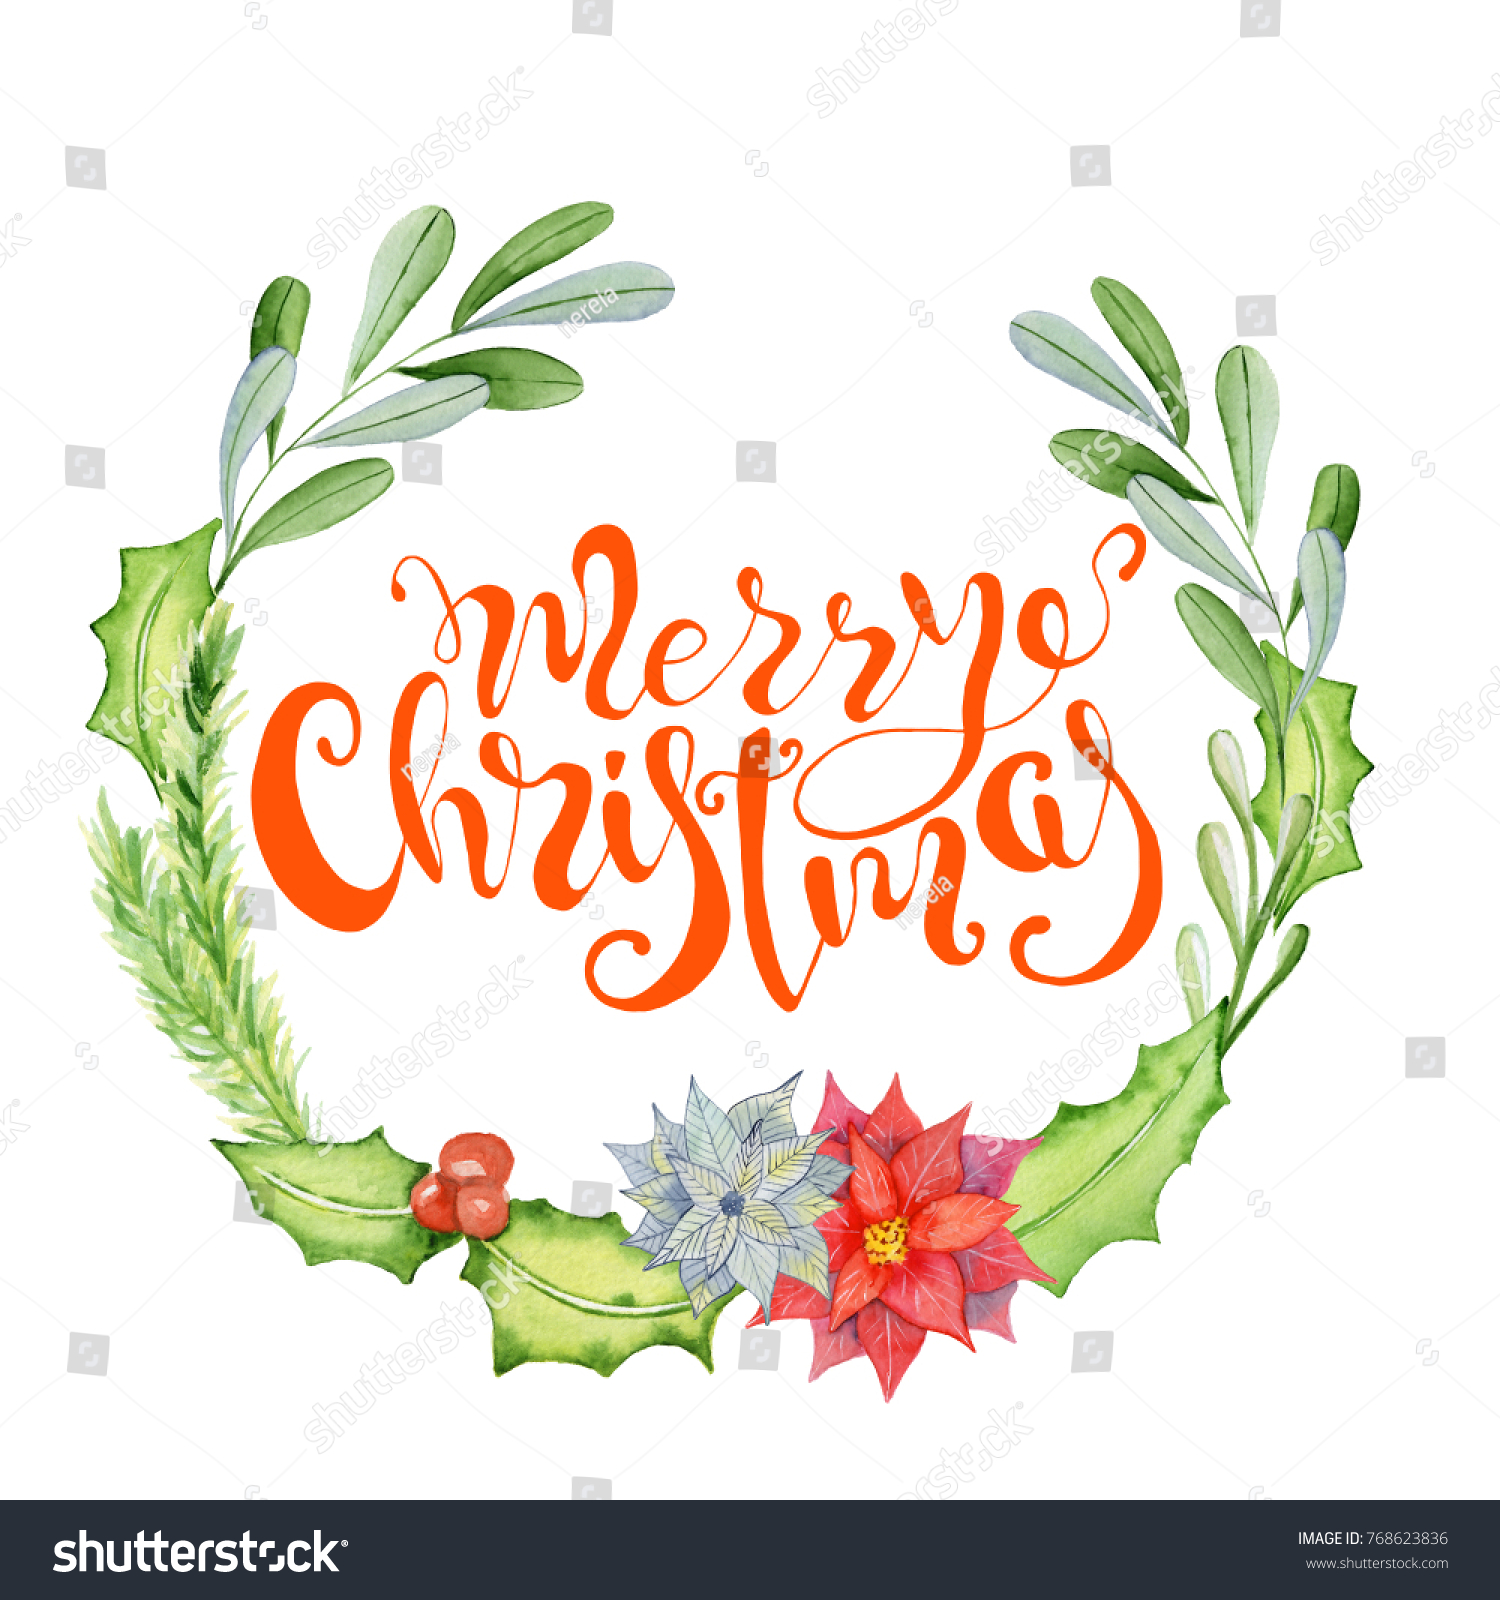 merry christmas watercolor card with floral winter elements happy new year lettering quote flower